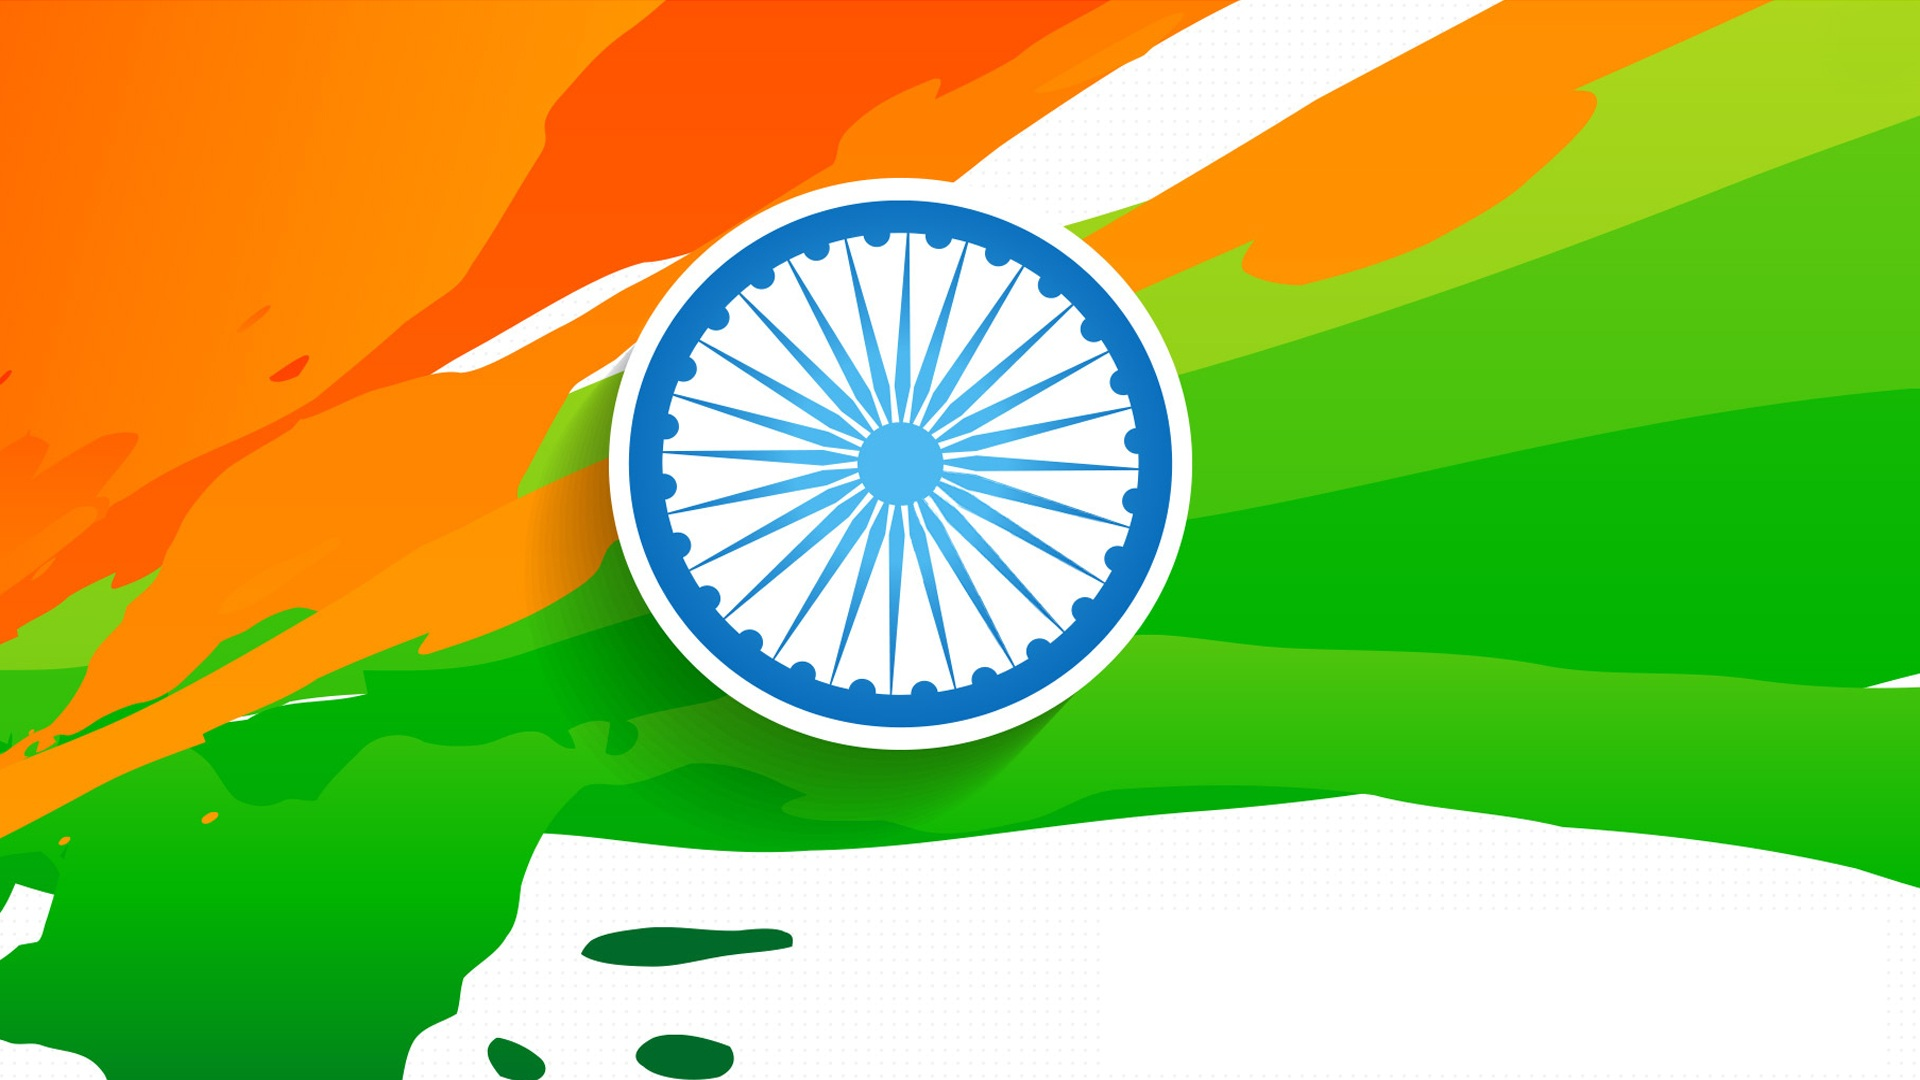 India Flag Hd Art: India Flag Wallpaper 2015